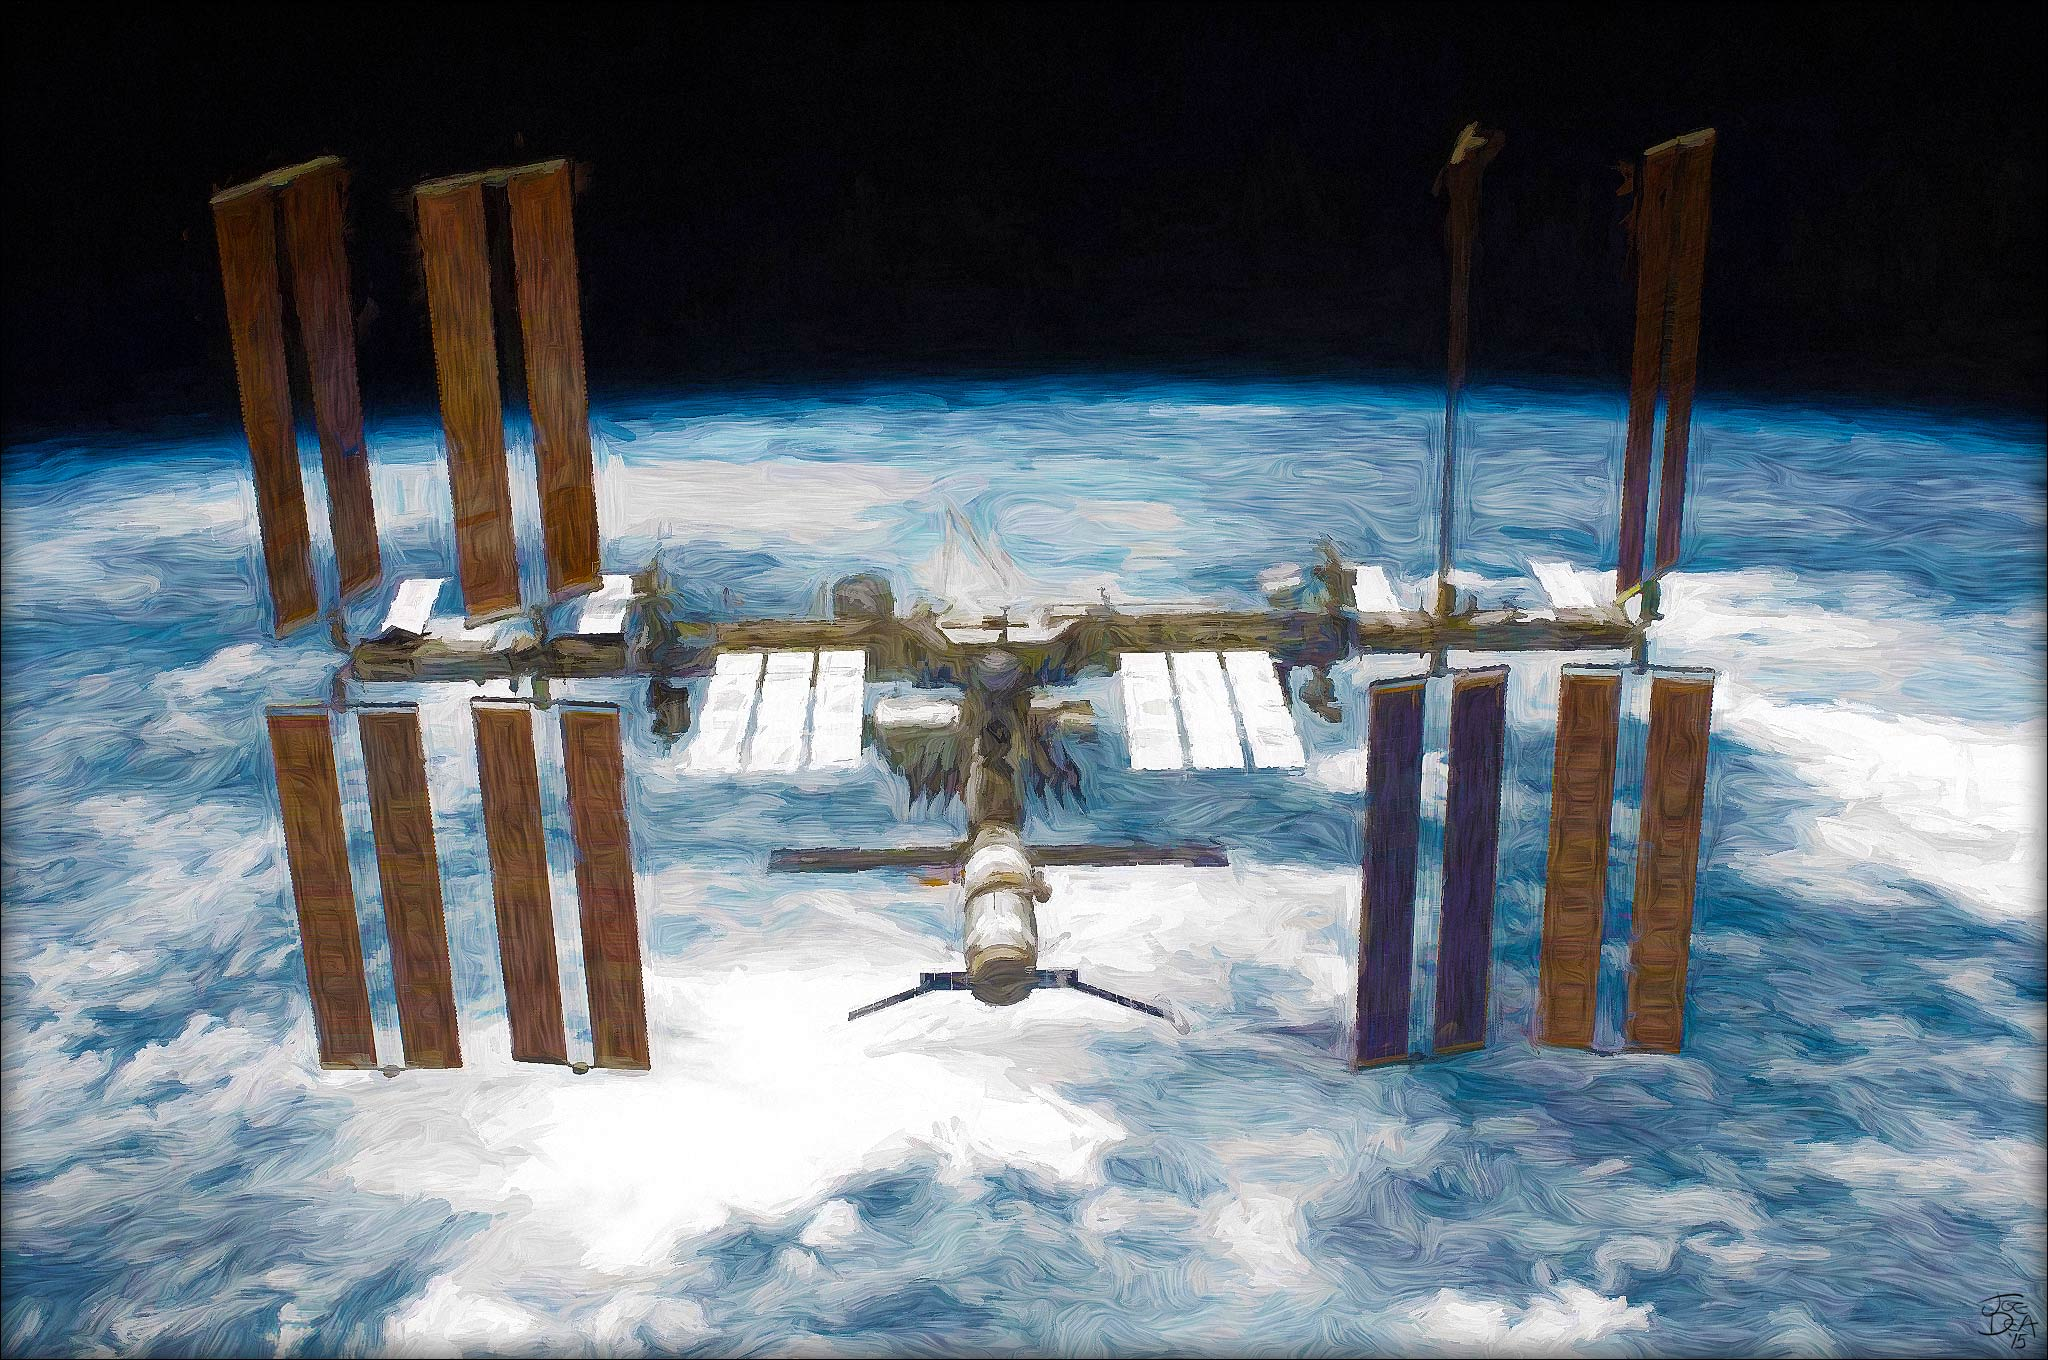 Joe-Dea-International-Space-Station-Painting-2-LB.jpg